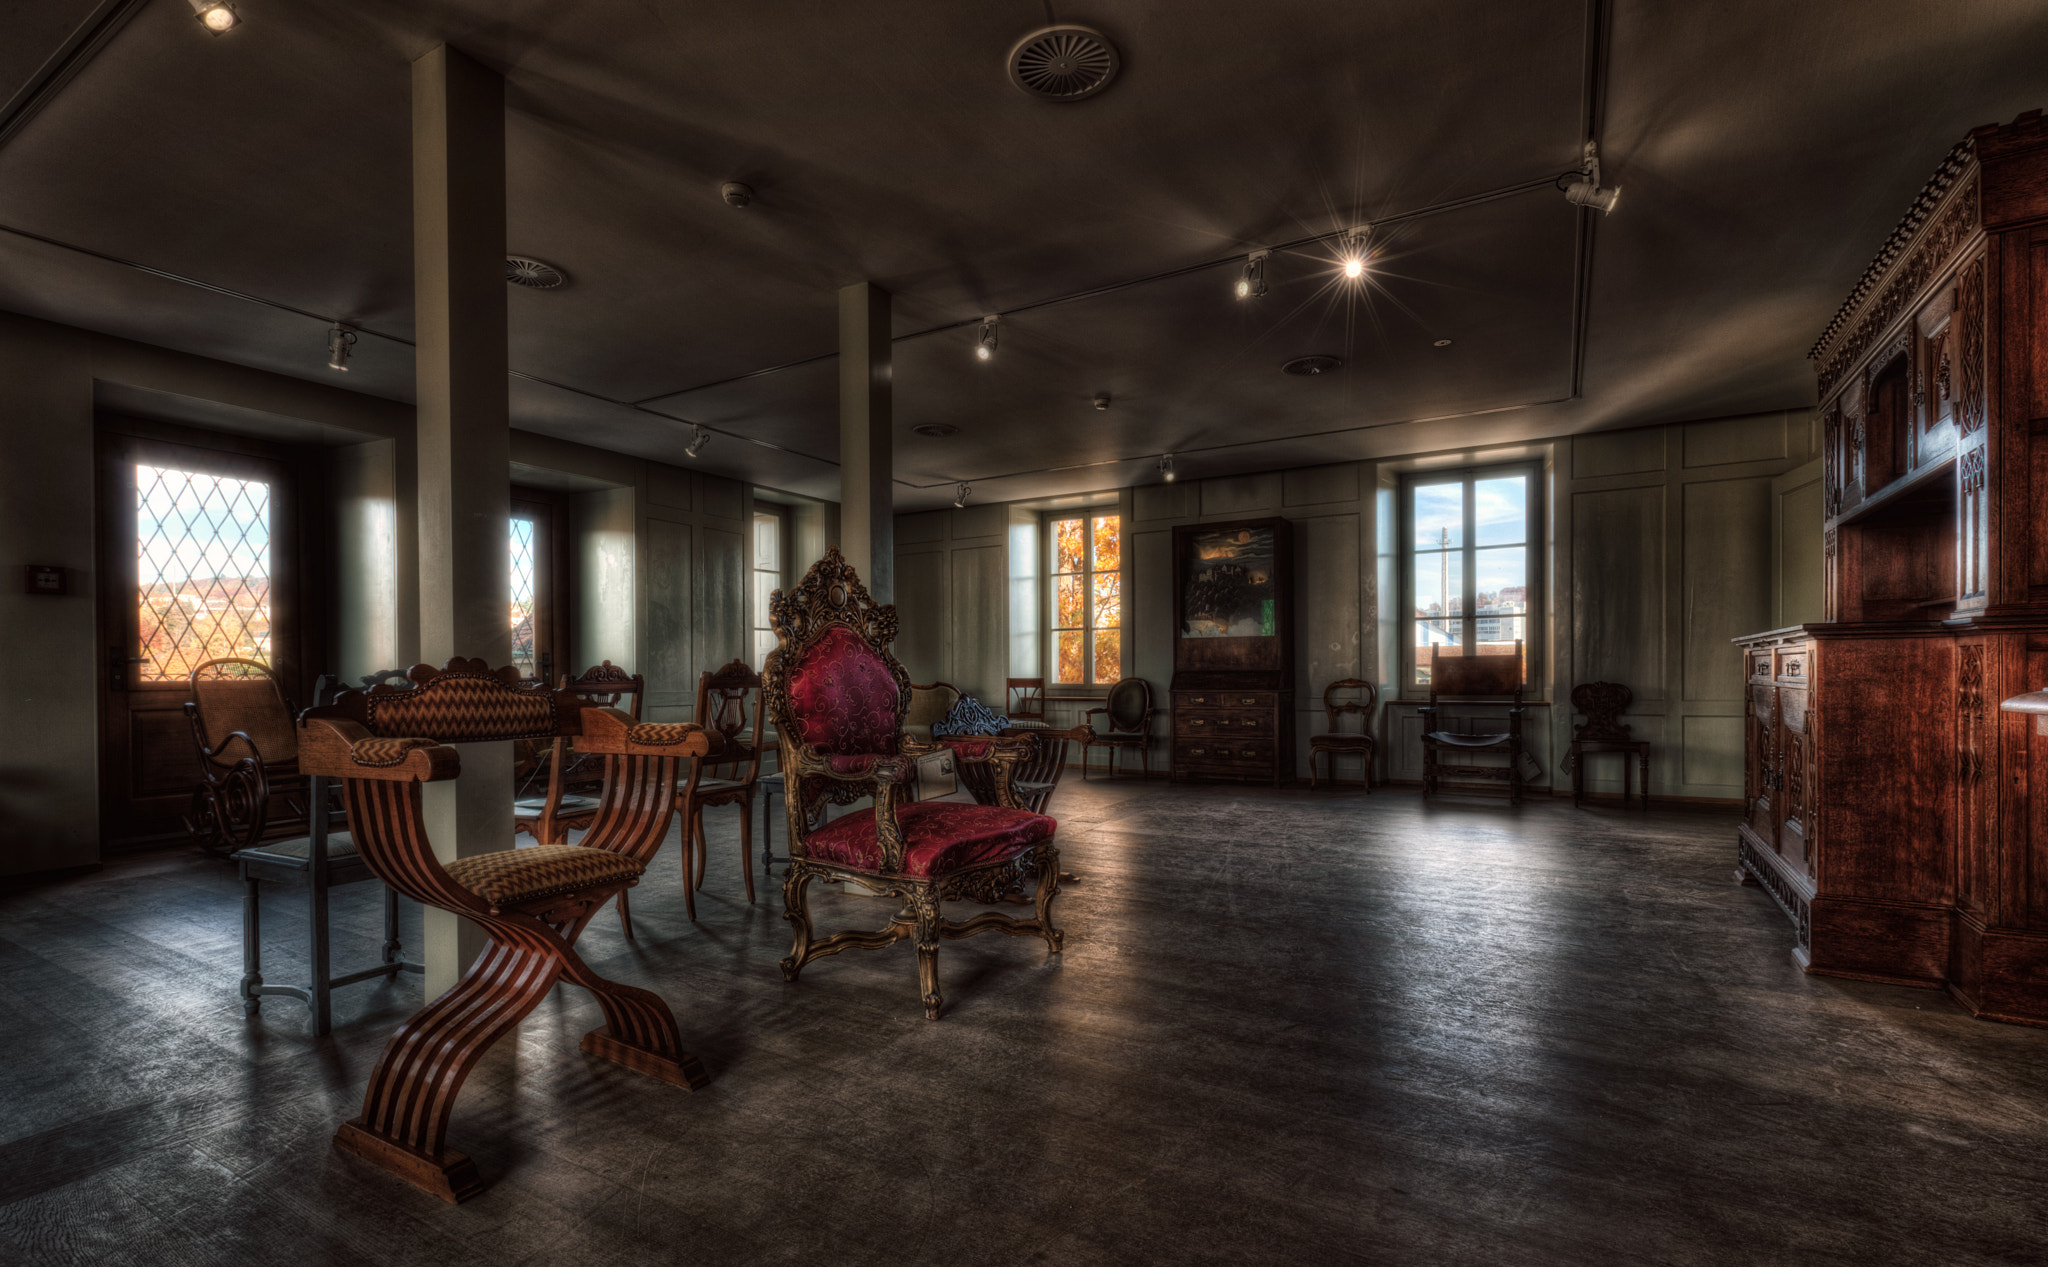 Photograph An old Room by Ingo Meckmann on 500px